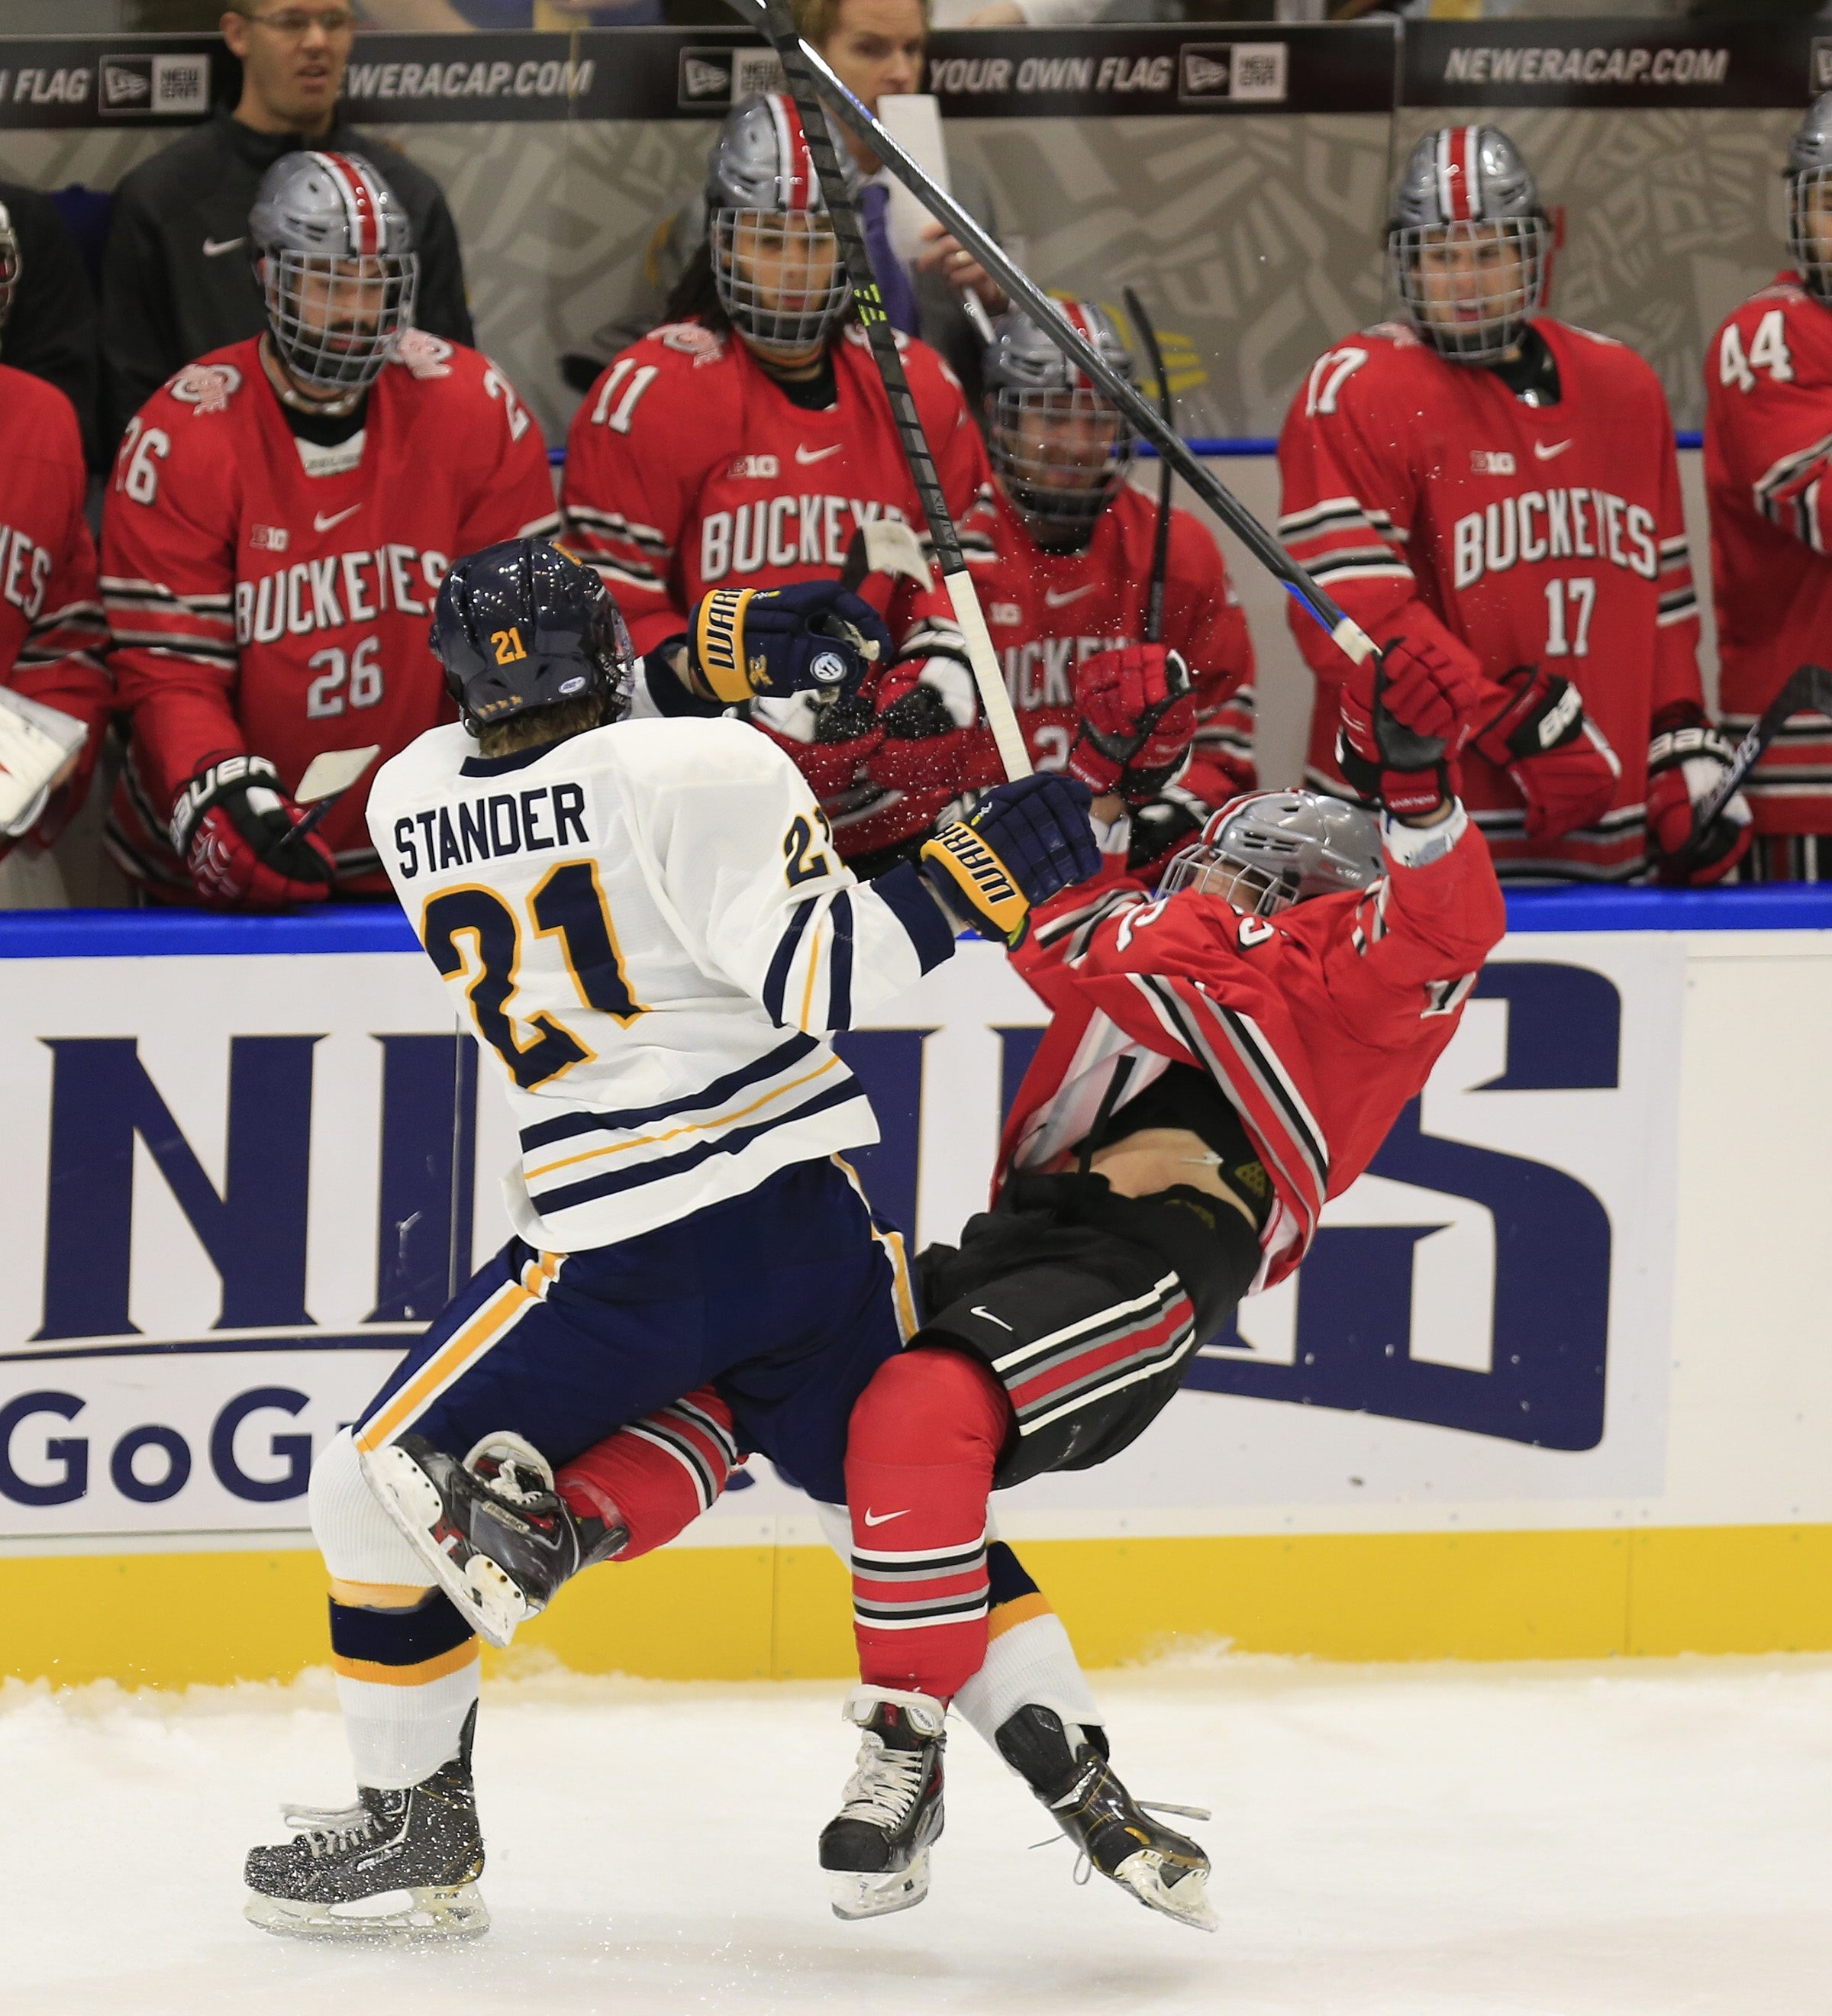 Canisius' Jack Stander catches Ohio State's Chad Niddery with a mid-ice check during first-period action at HarborCenter.